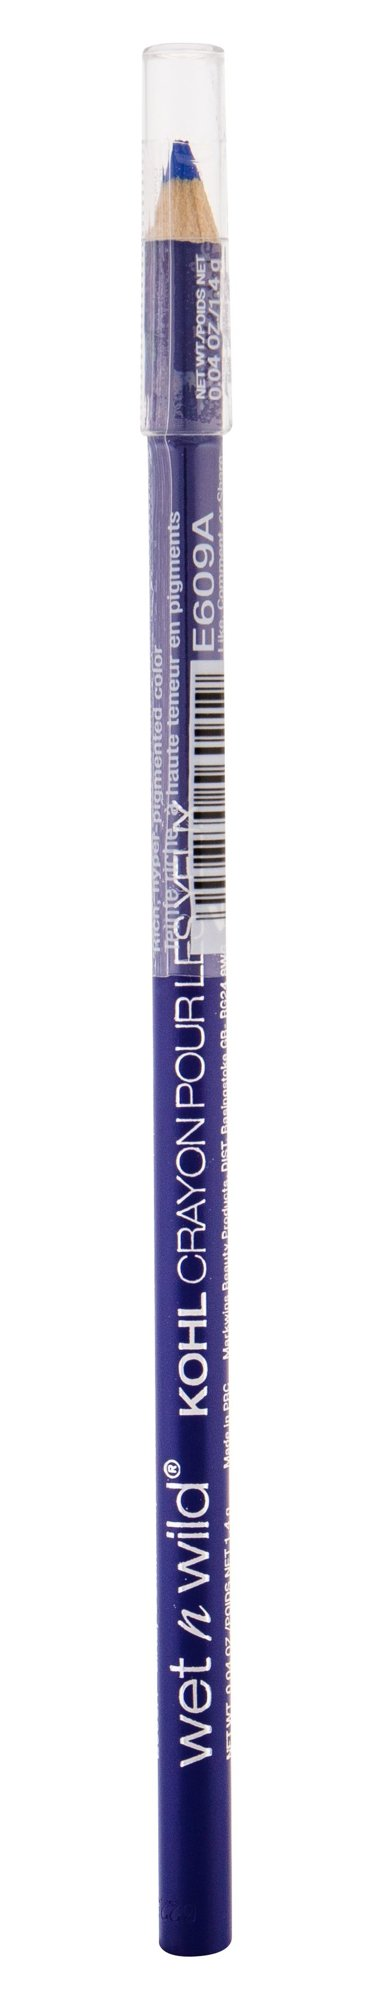 Wet n Wild Color Icon Eye Pencil 1,4ml Like, Comment, Or Share